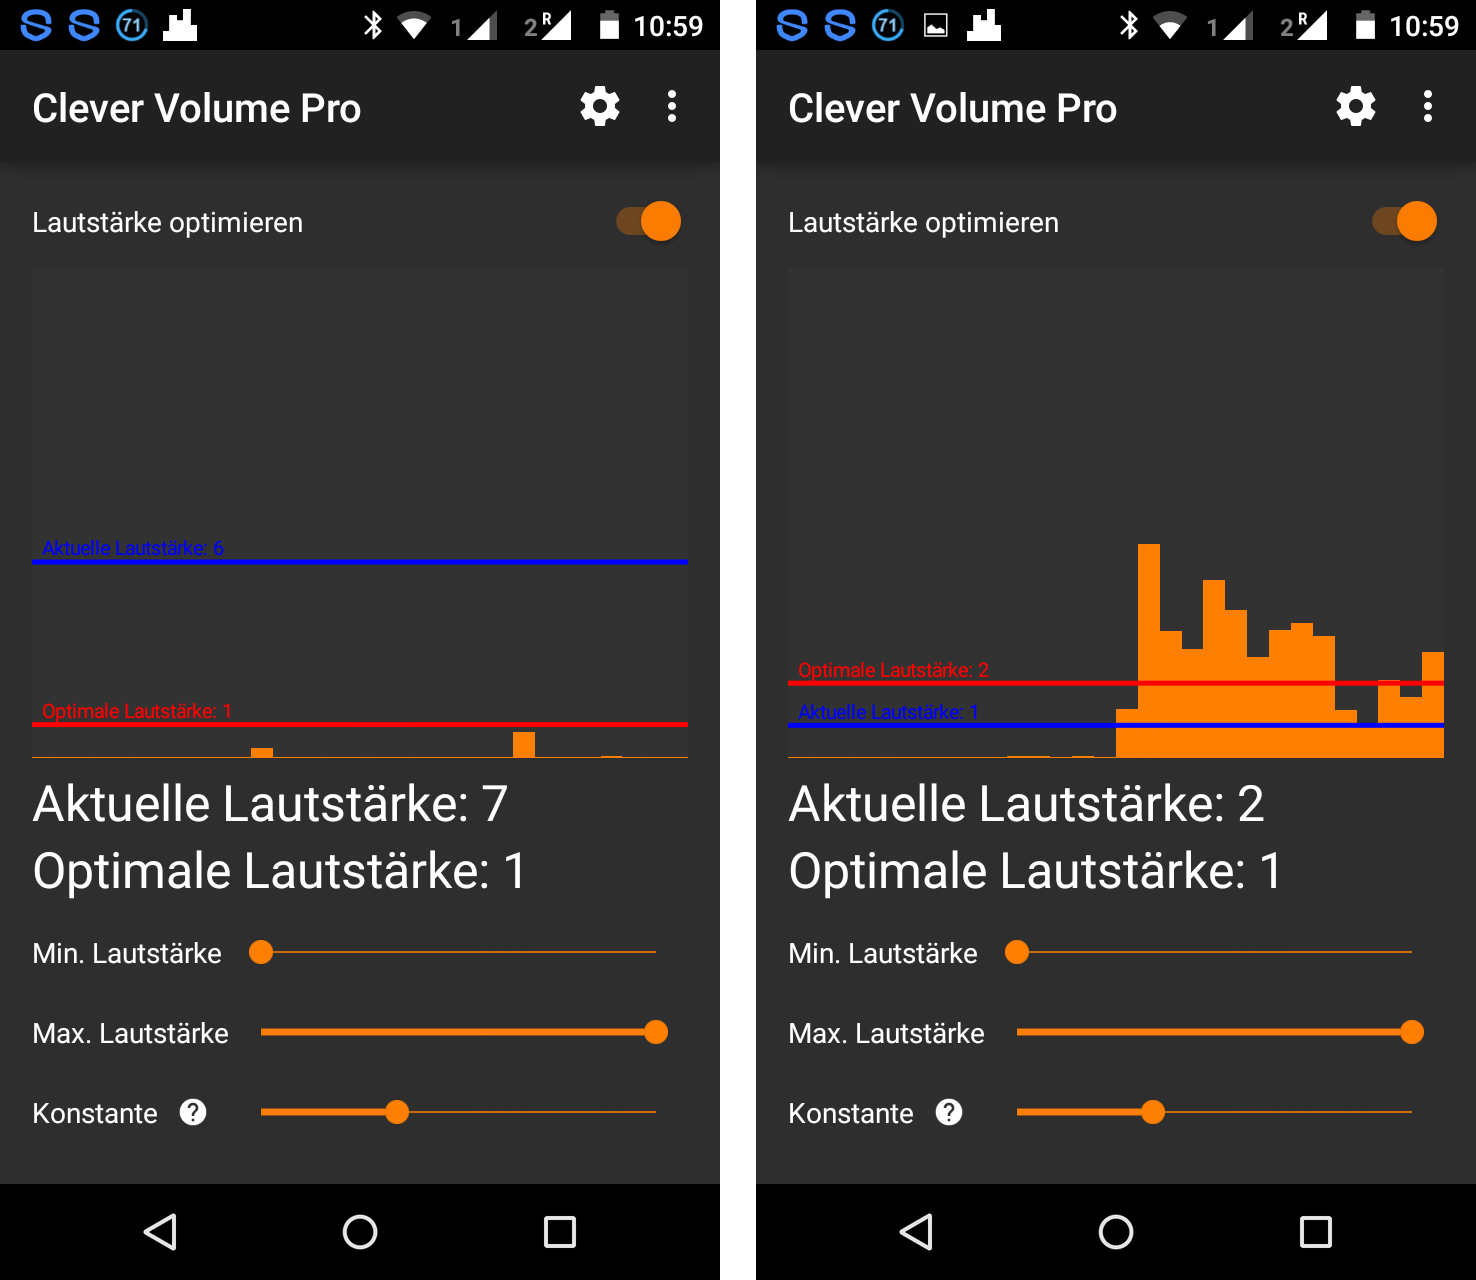 App-Review: Clever Volume Pro